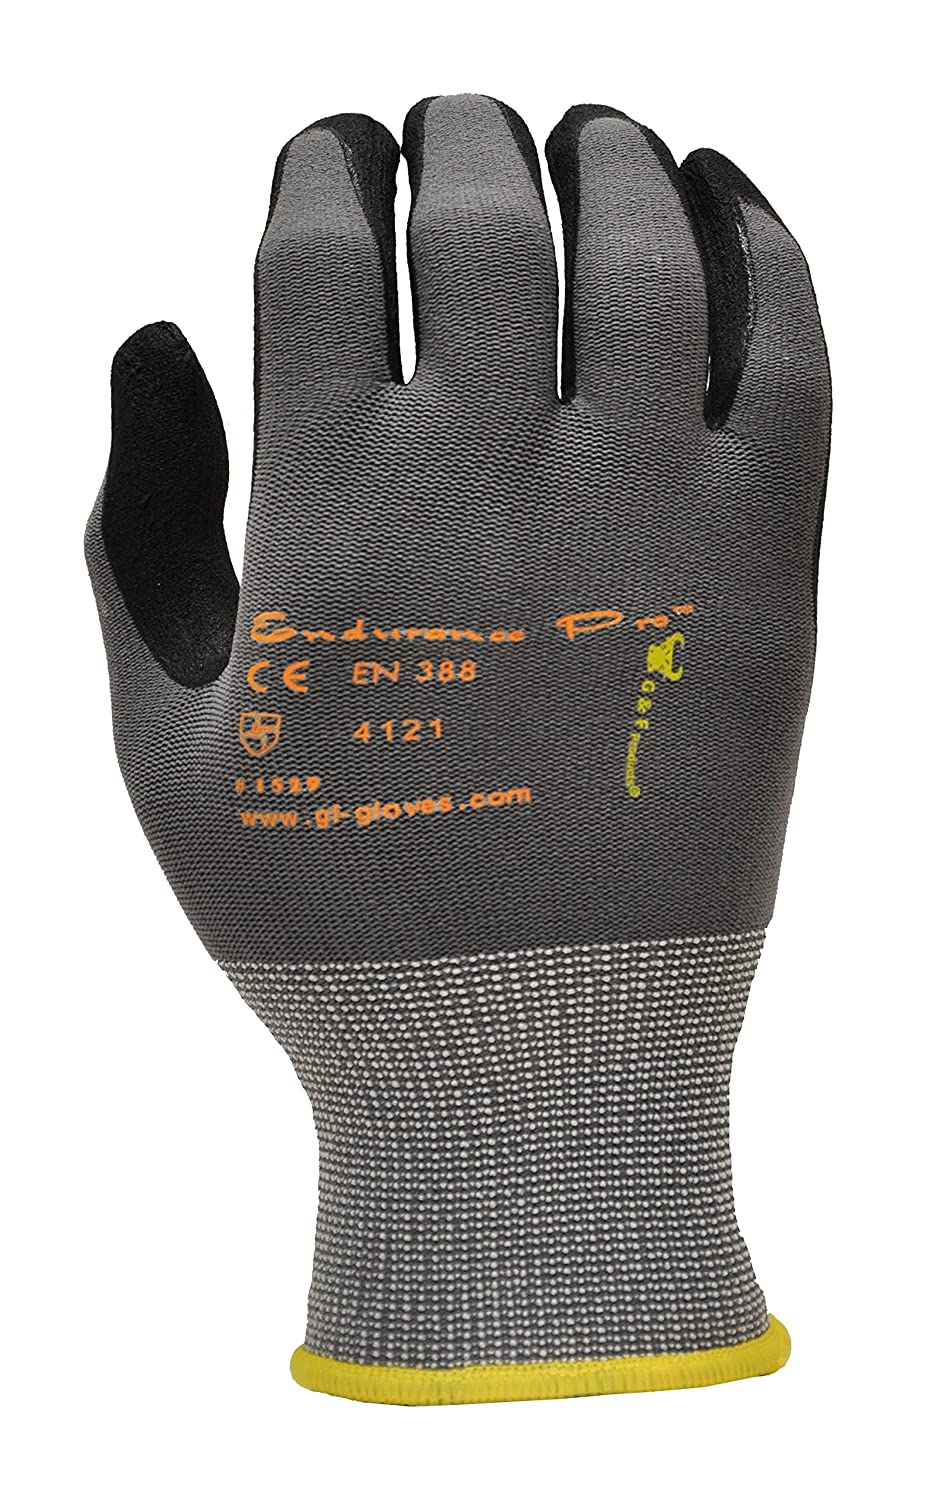 G /& F 1529S-DZ EndurancePRO MicroFoam Nitrile Coated Work Gloves for General Purposes 12 Pair Pack Small Lightweight Work Gloves